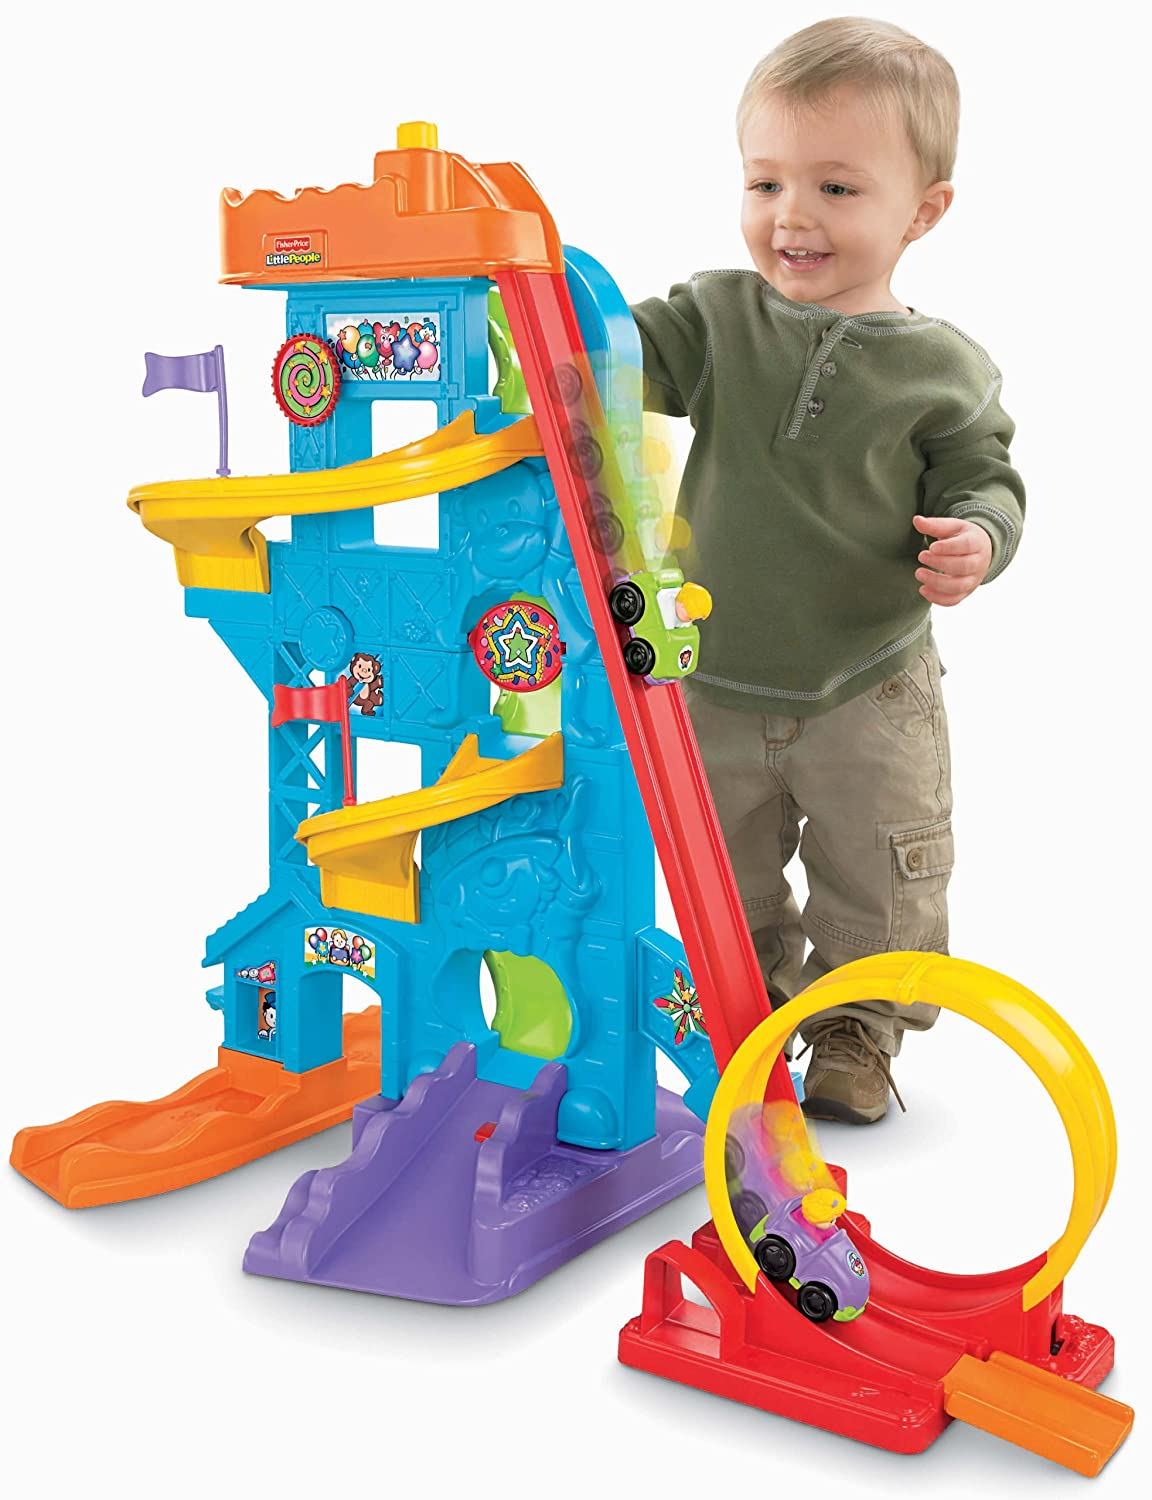 Popular Toys For Boys : Babies year old boy toys